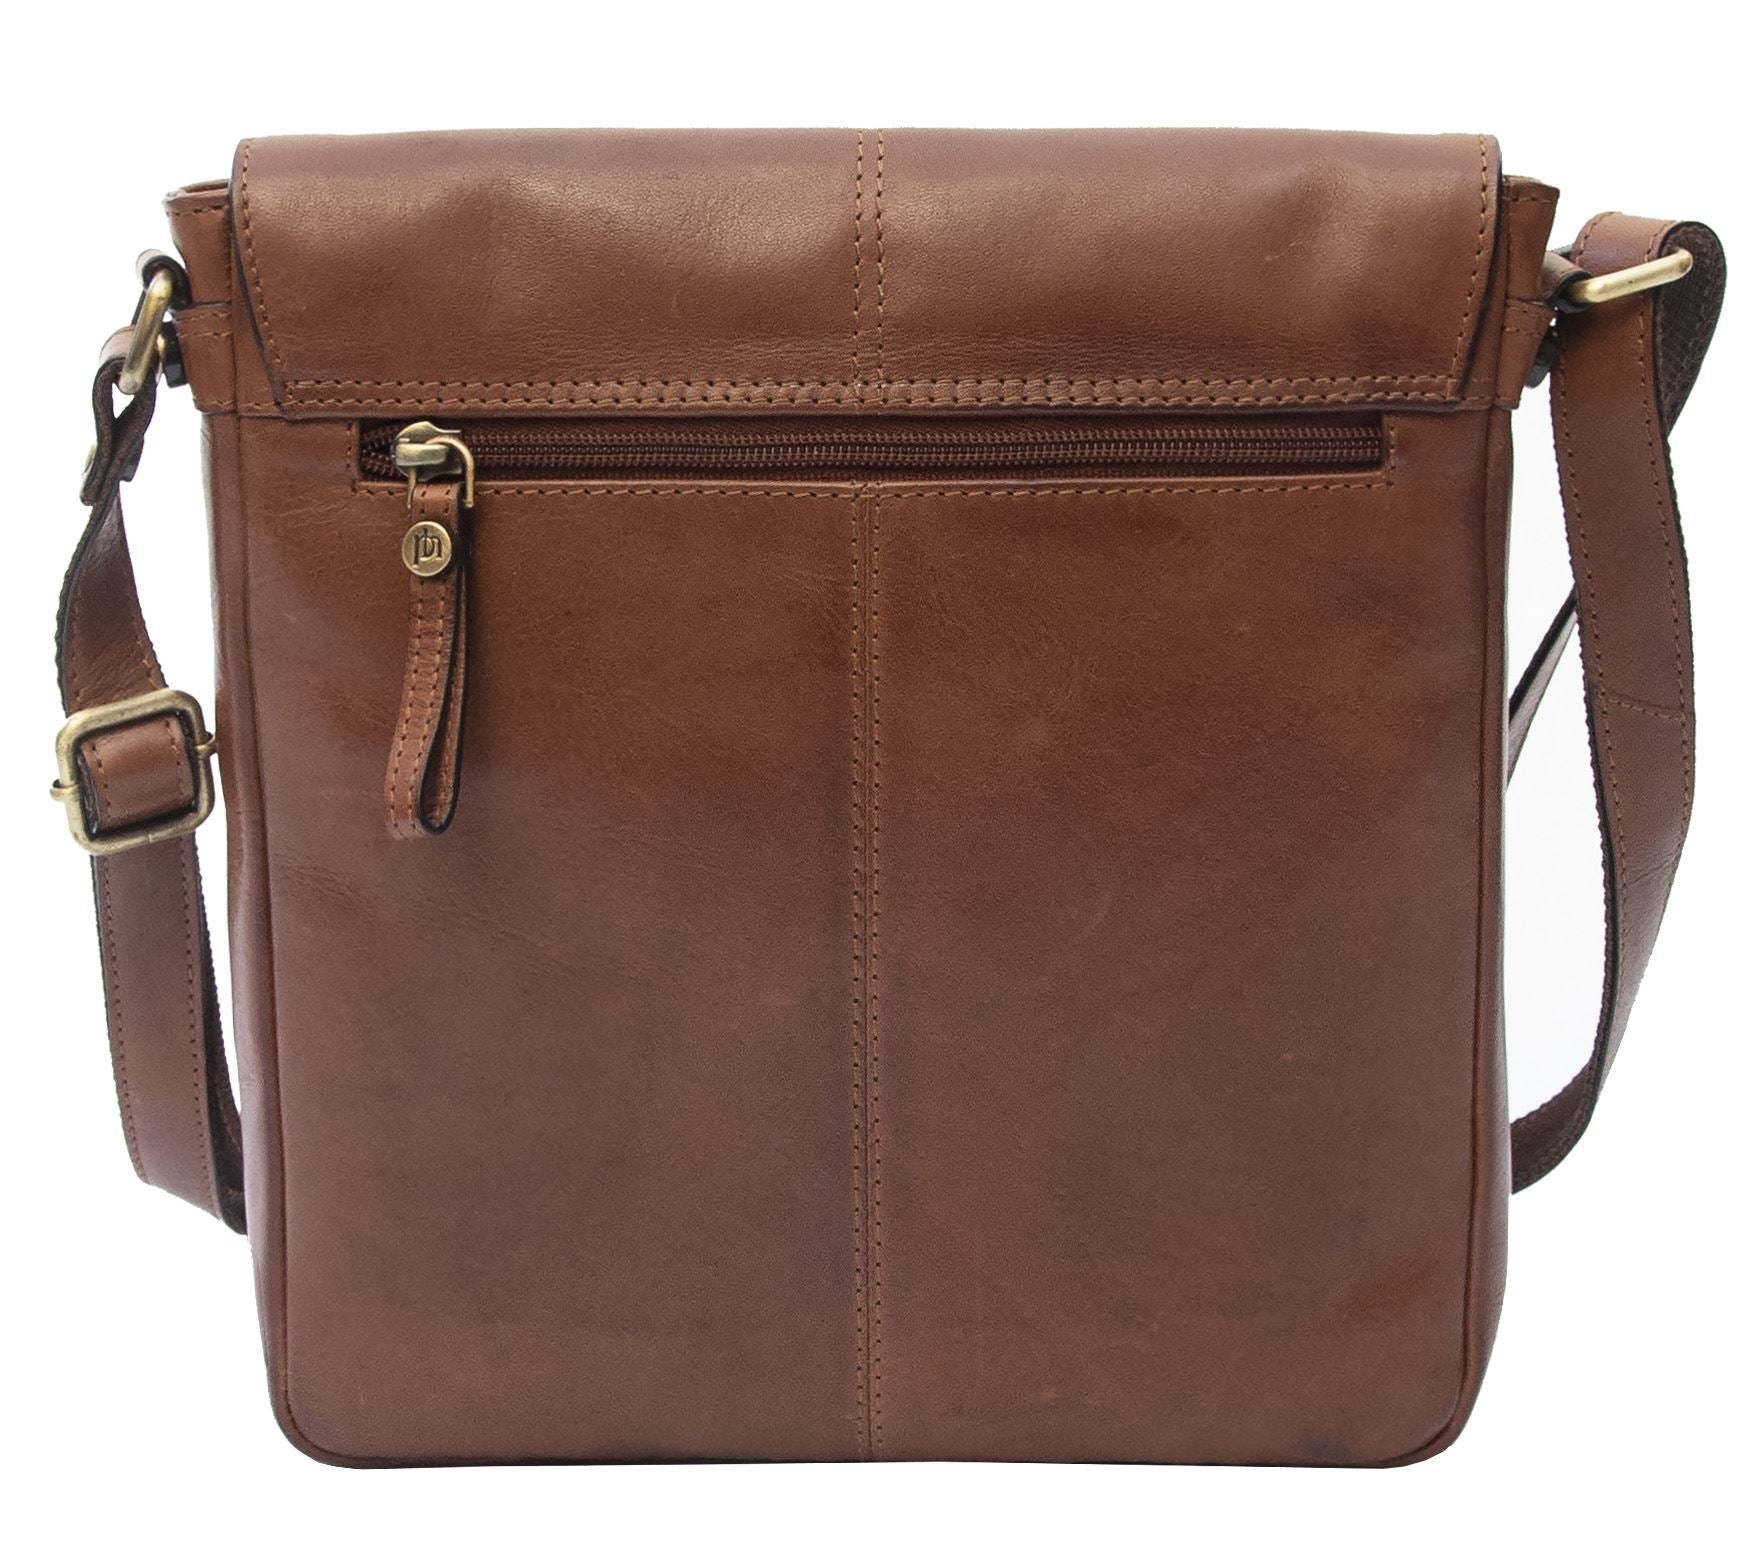 Ridgeback Leather Crossbody Handbag - 677